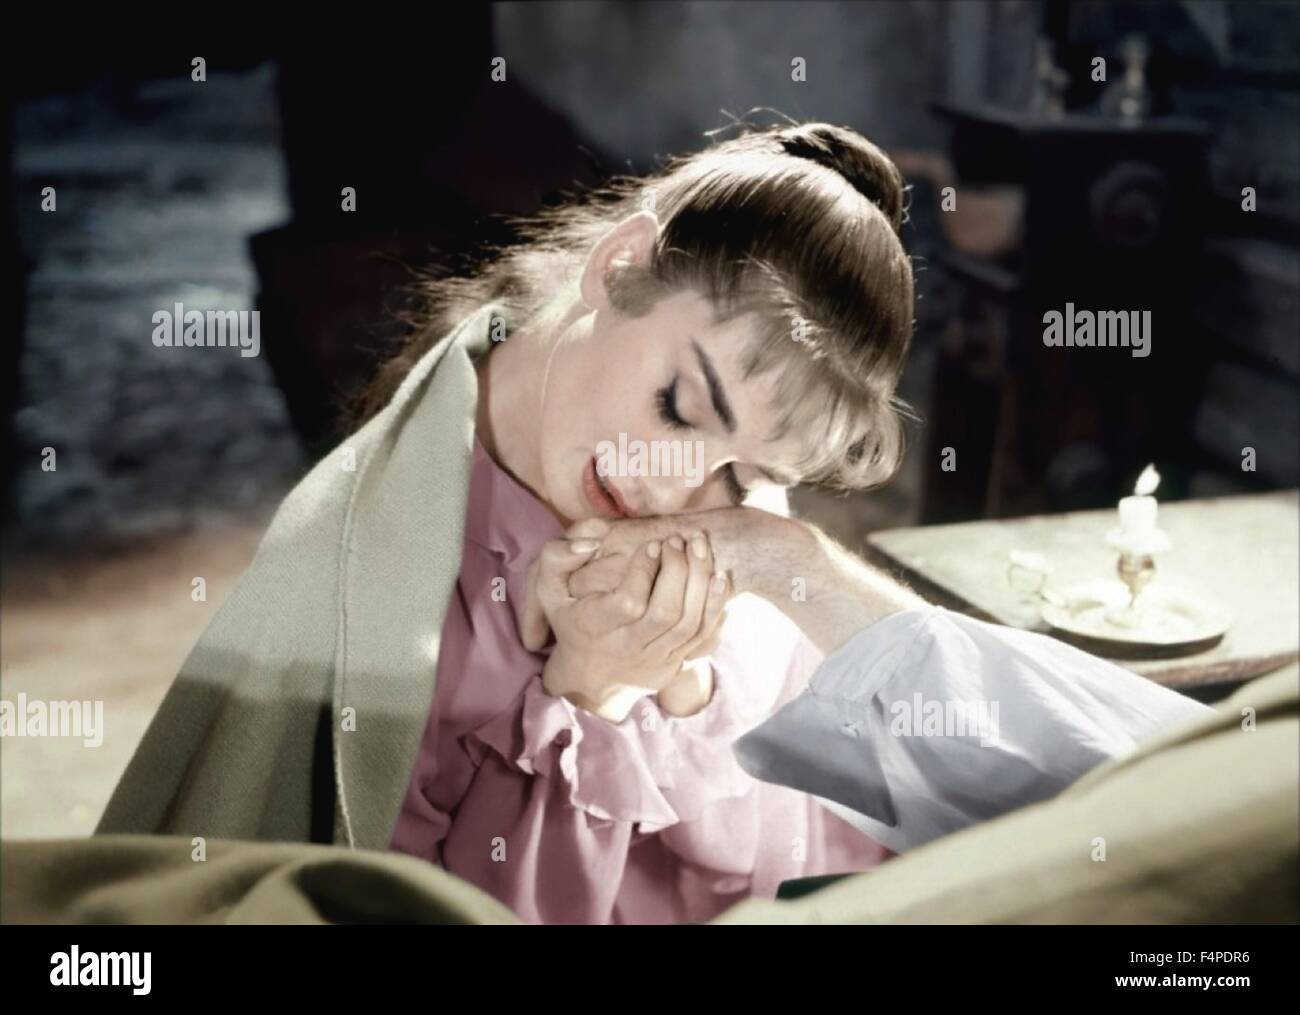 Audrey Hepburn / War And Peace 1956 directed by King Vidor - Stock Image